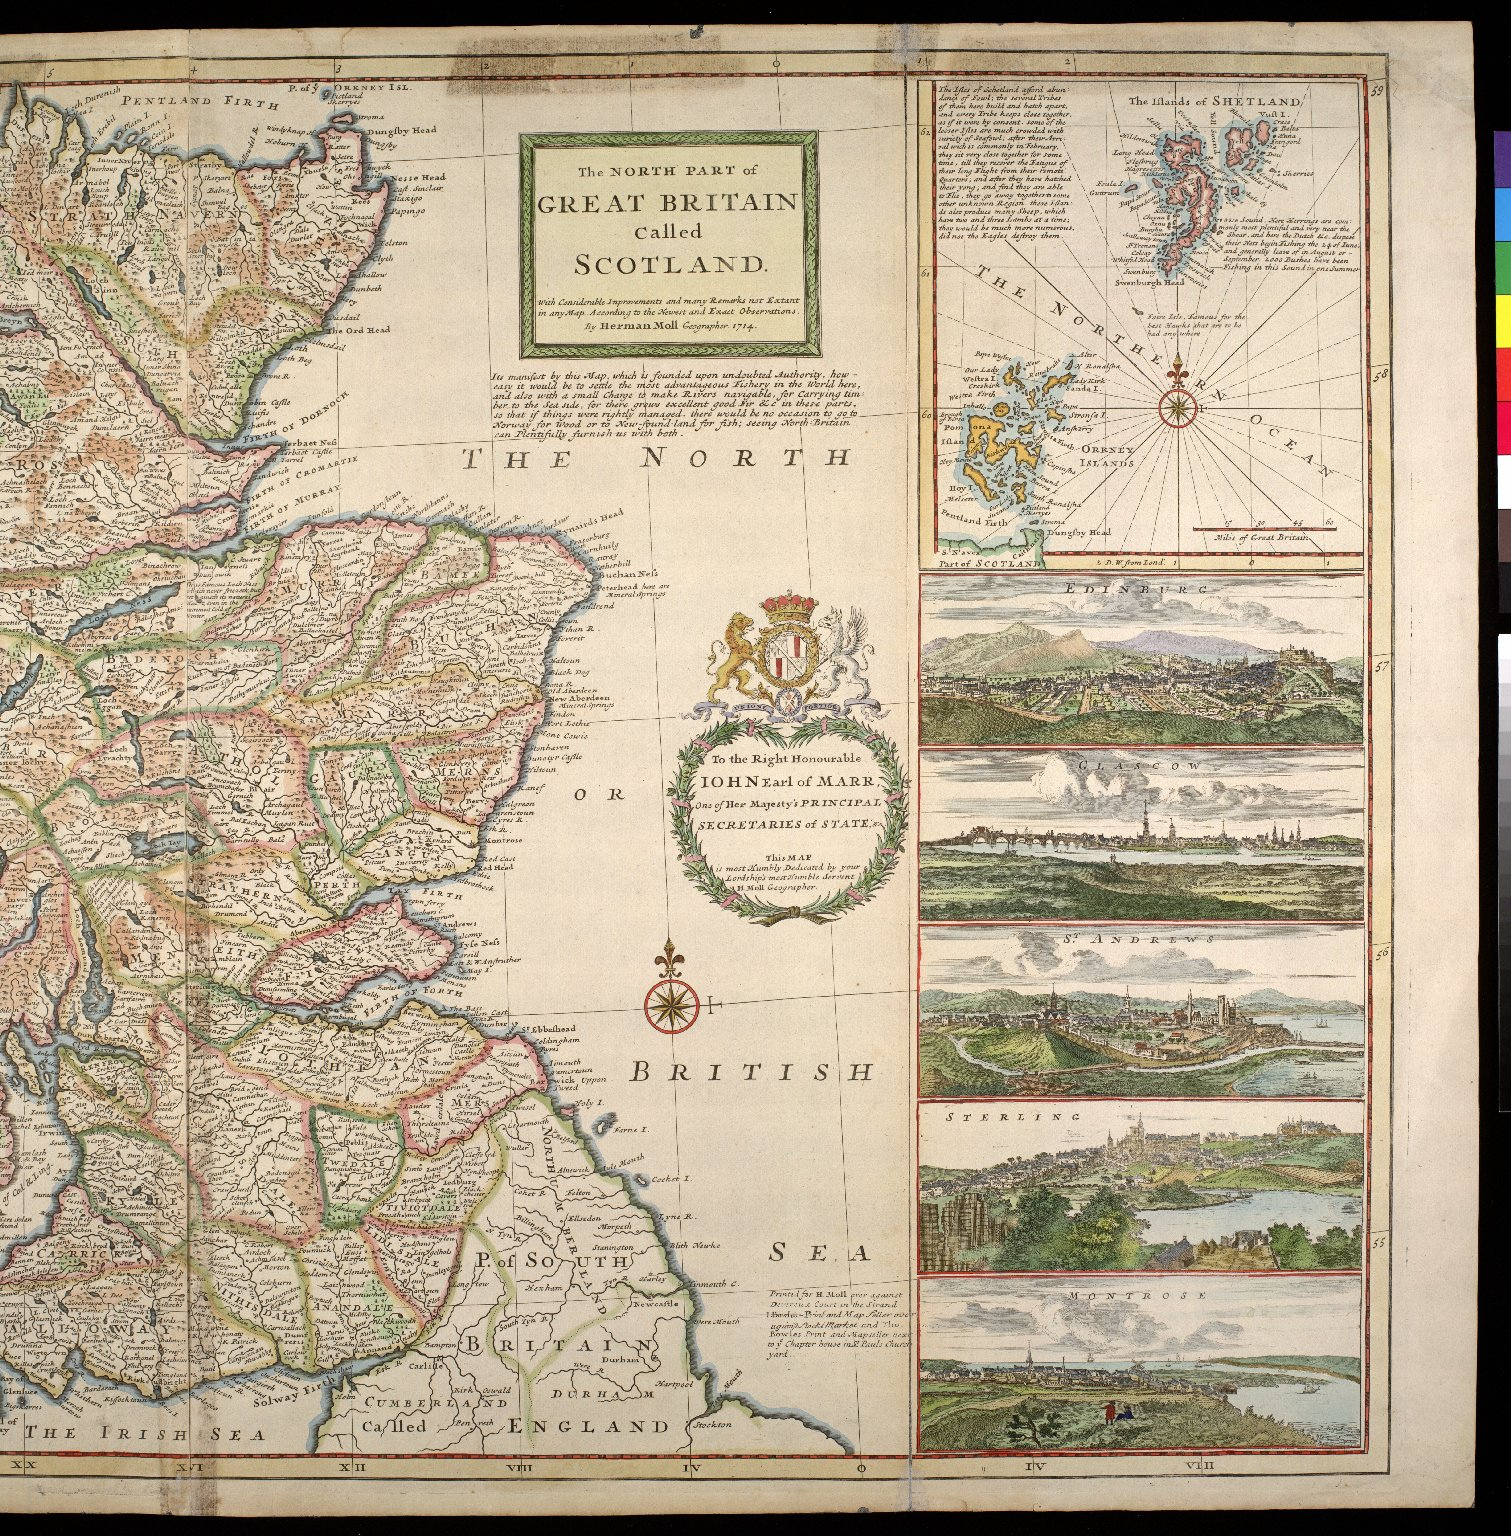 The North Part of Great Britain Called Scotland. With Considerable Inprovements and many Remarks not Extant in any Map. According to the Newest and Exact Observations. [2 of 2]